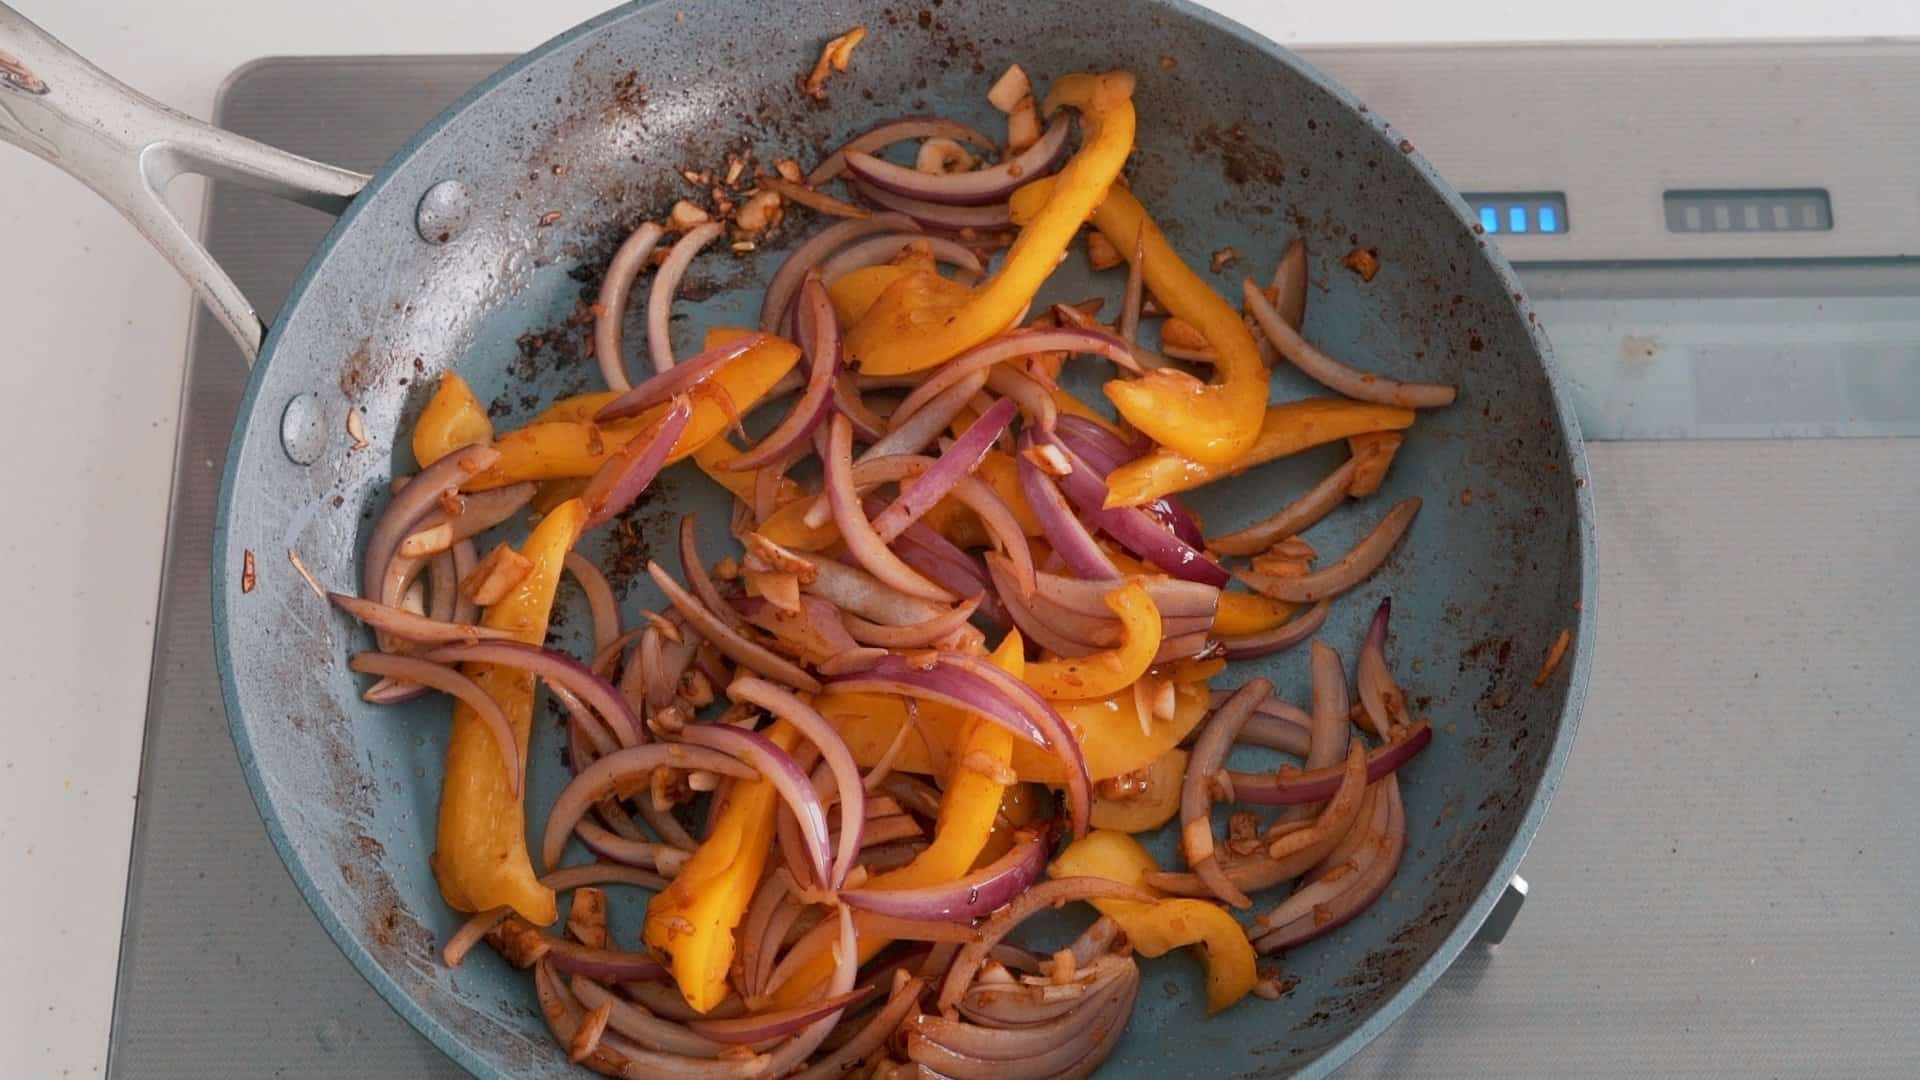 Stir-frying red onions and peppers for making Lomo Saltado.